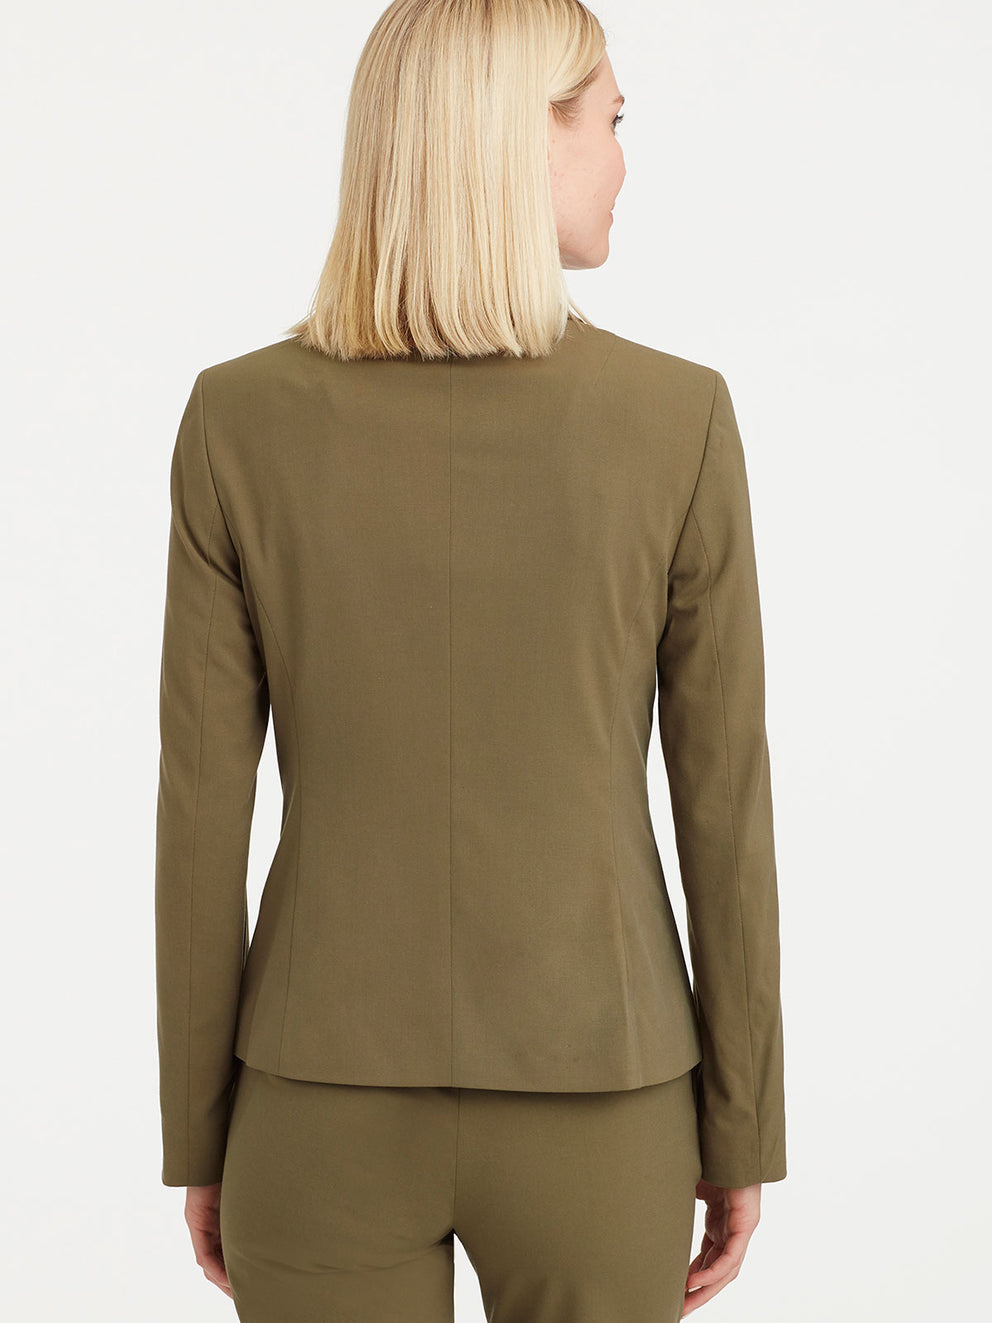 The Jones New York Washable Cropped Two-Button Jacket in color Fatigue Green - Image Position 3